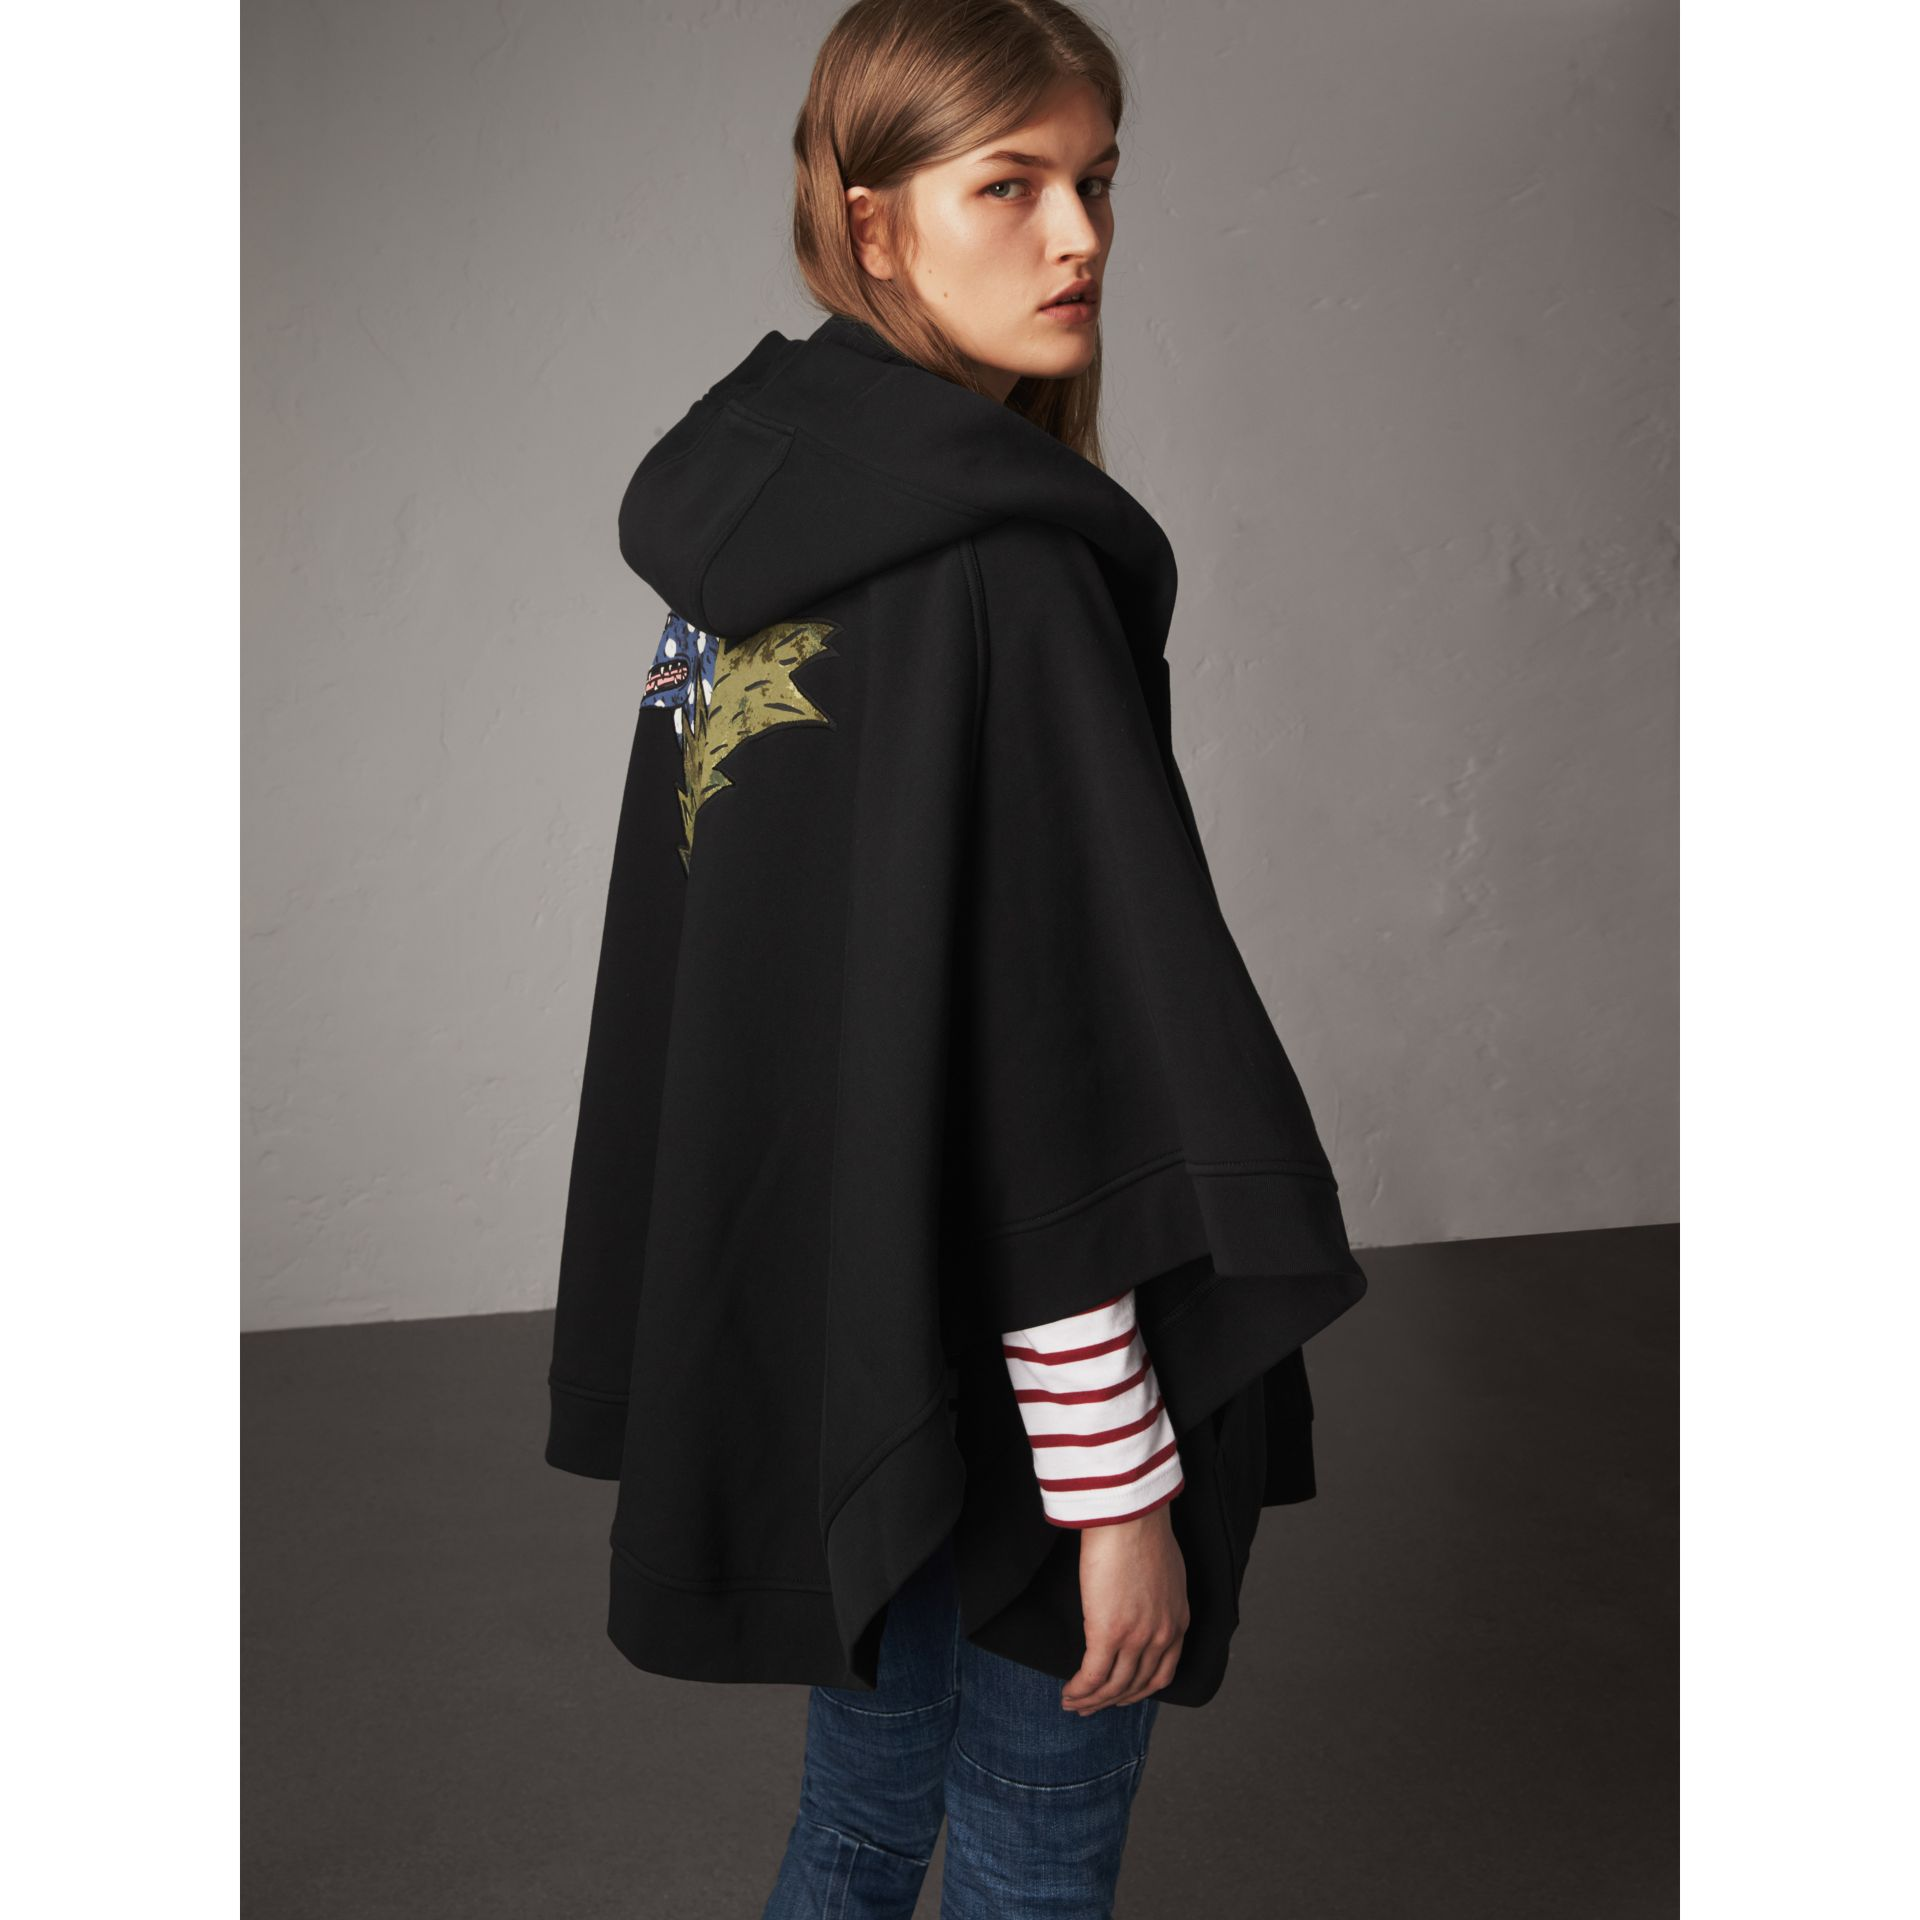 Beasts Motif Hooded Sweatshirt Poncho in Black - Women | Burberry - gallery image 0